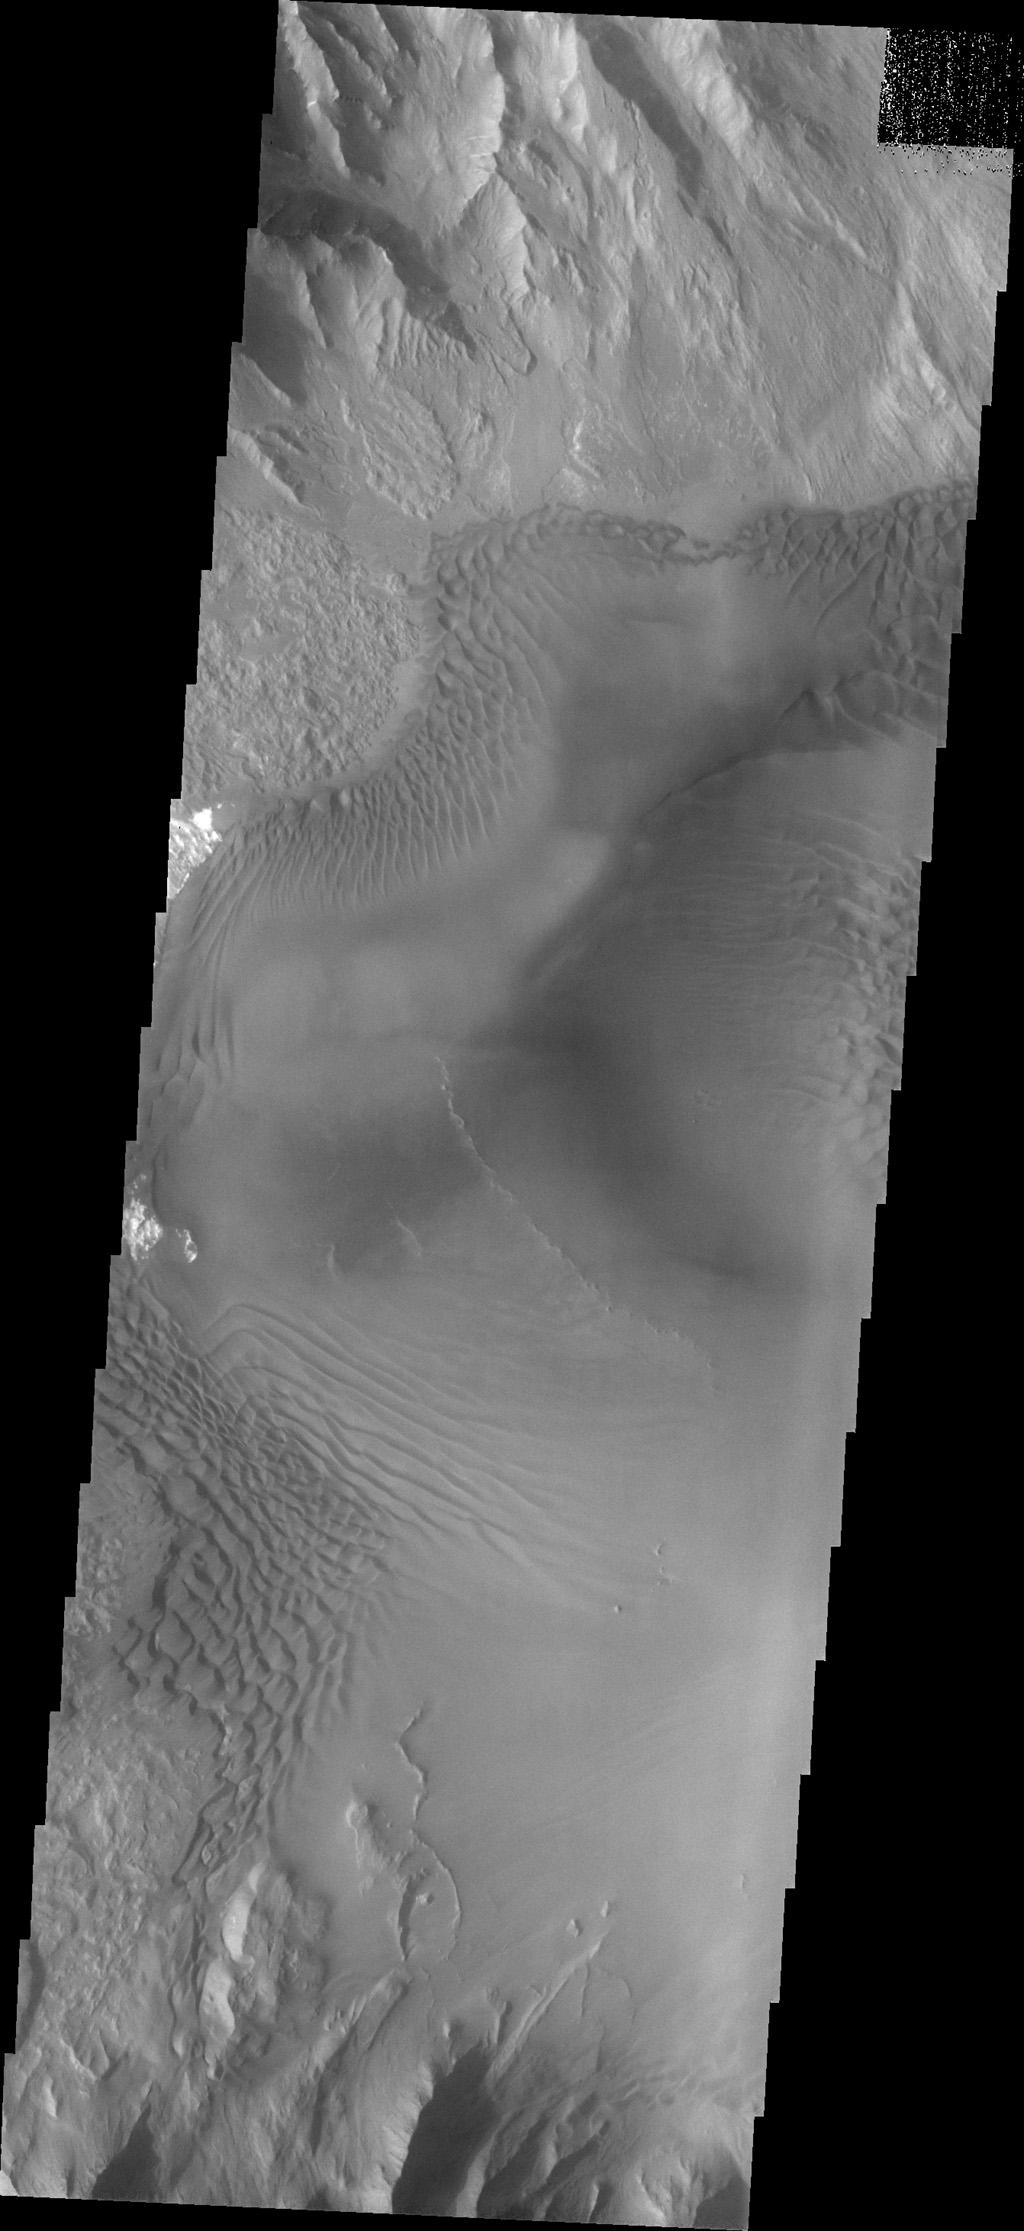 Dune forms cover the top of this sand sheet on the floor of Juventae Chasma, a chasma north of the Valles Marineris canyon system in this image from NASA's Mars Odyssey.